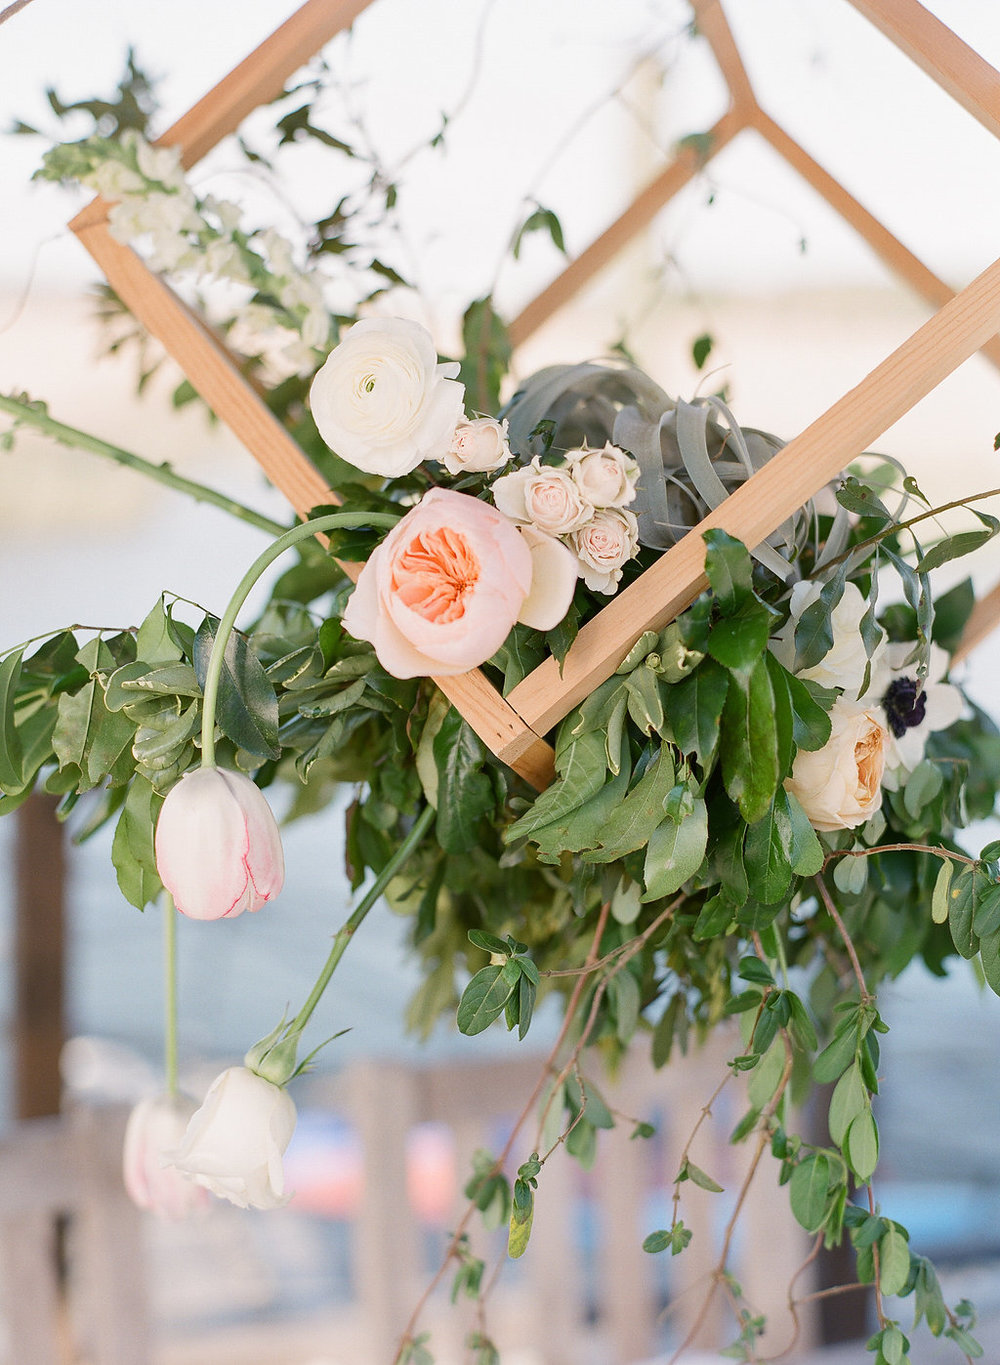 hanging-centerpiece-wedding-florist-ivory-and-beau-savannah-wedding-florist-savannah-wedding-planner-savannah-event-designer-the-wyld-dock-bar-wedding.jpg